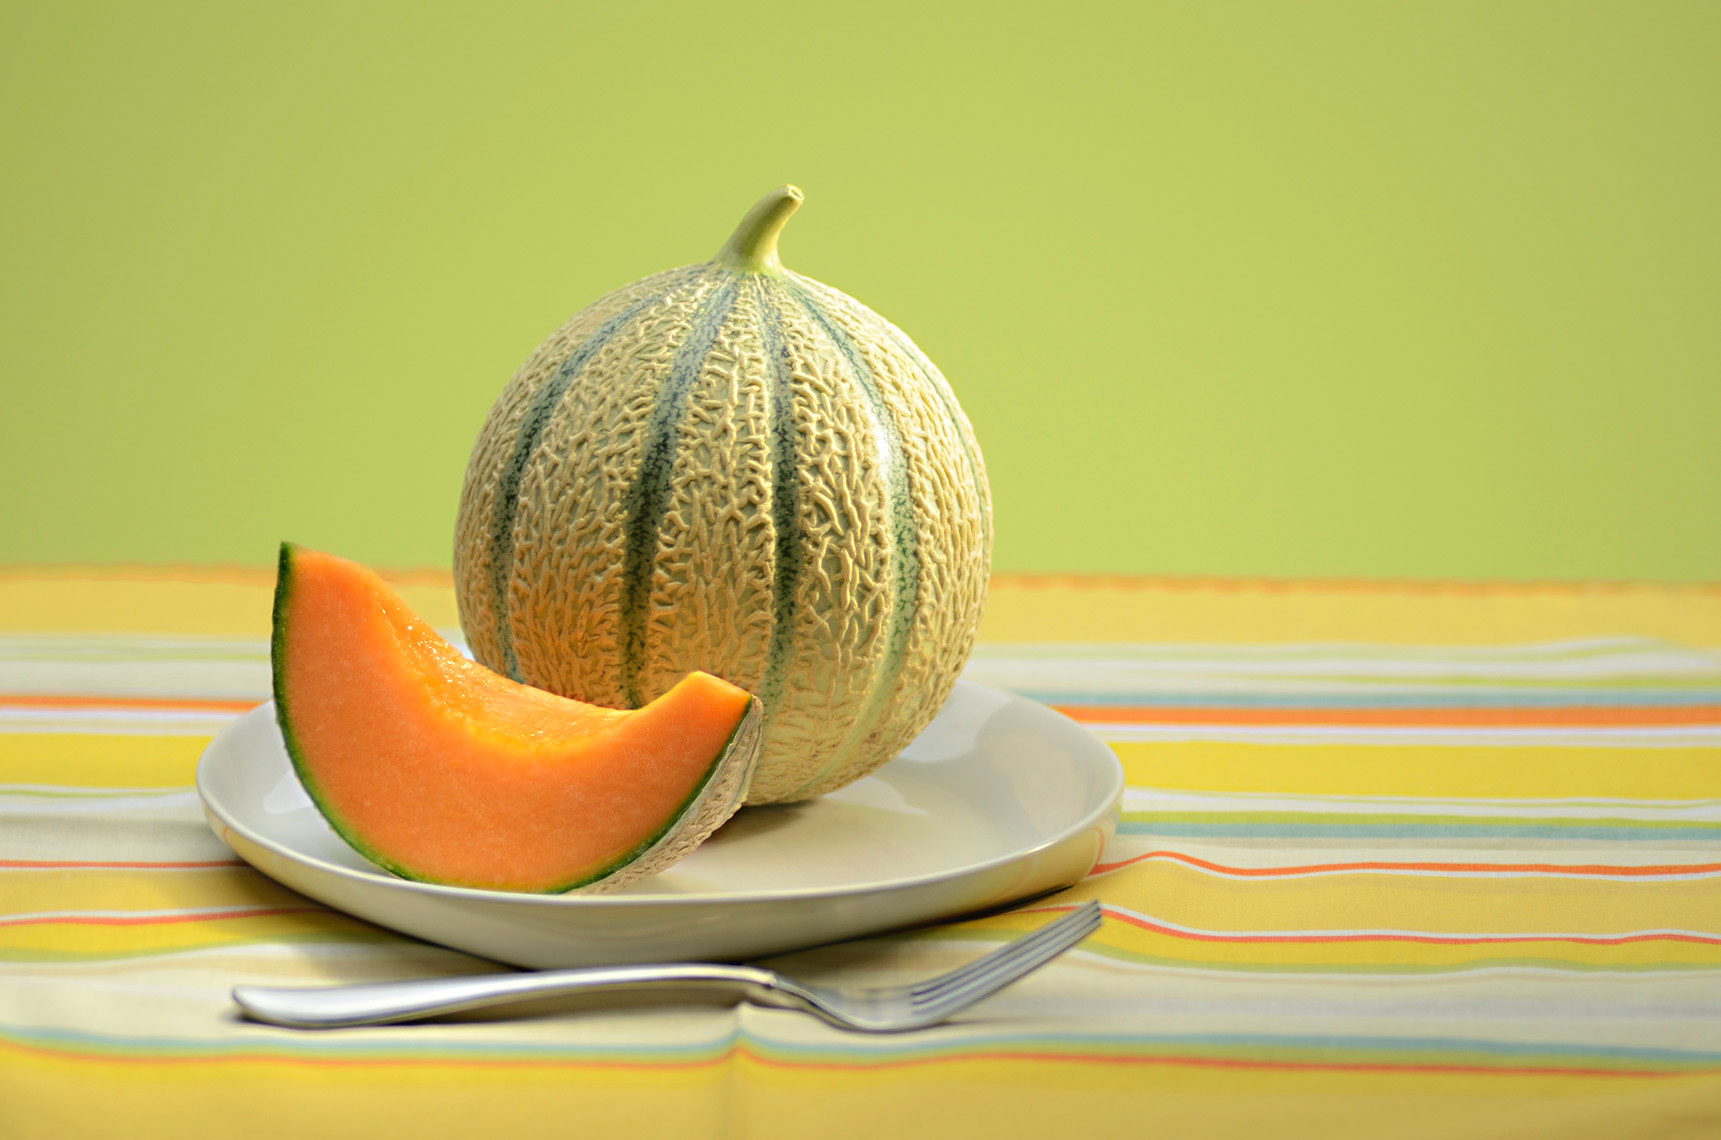 Beautiful-produce-photography-of-whole-and-cut-cantaloupe-melon-by-Joe-Atlas-food-photography.